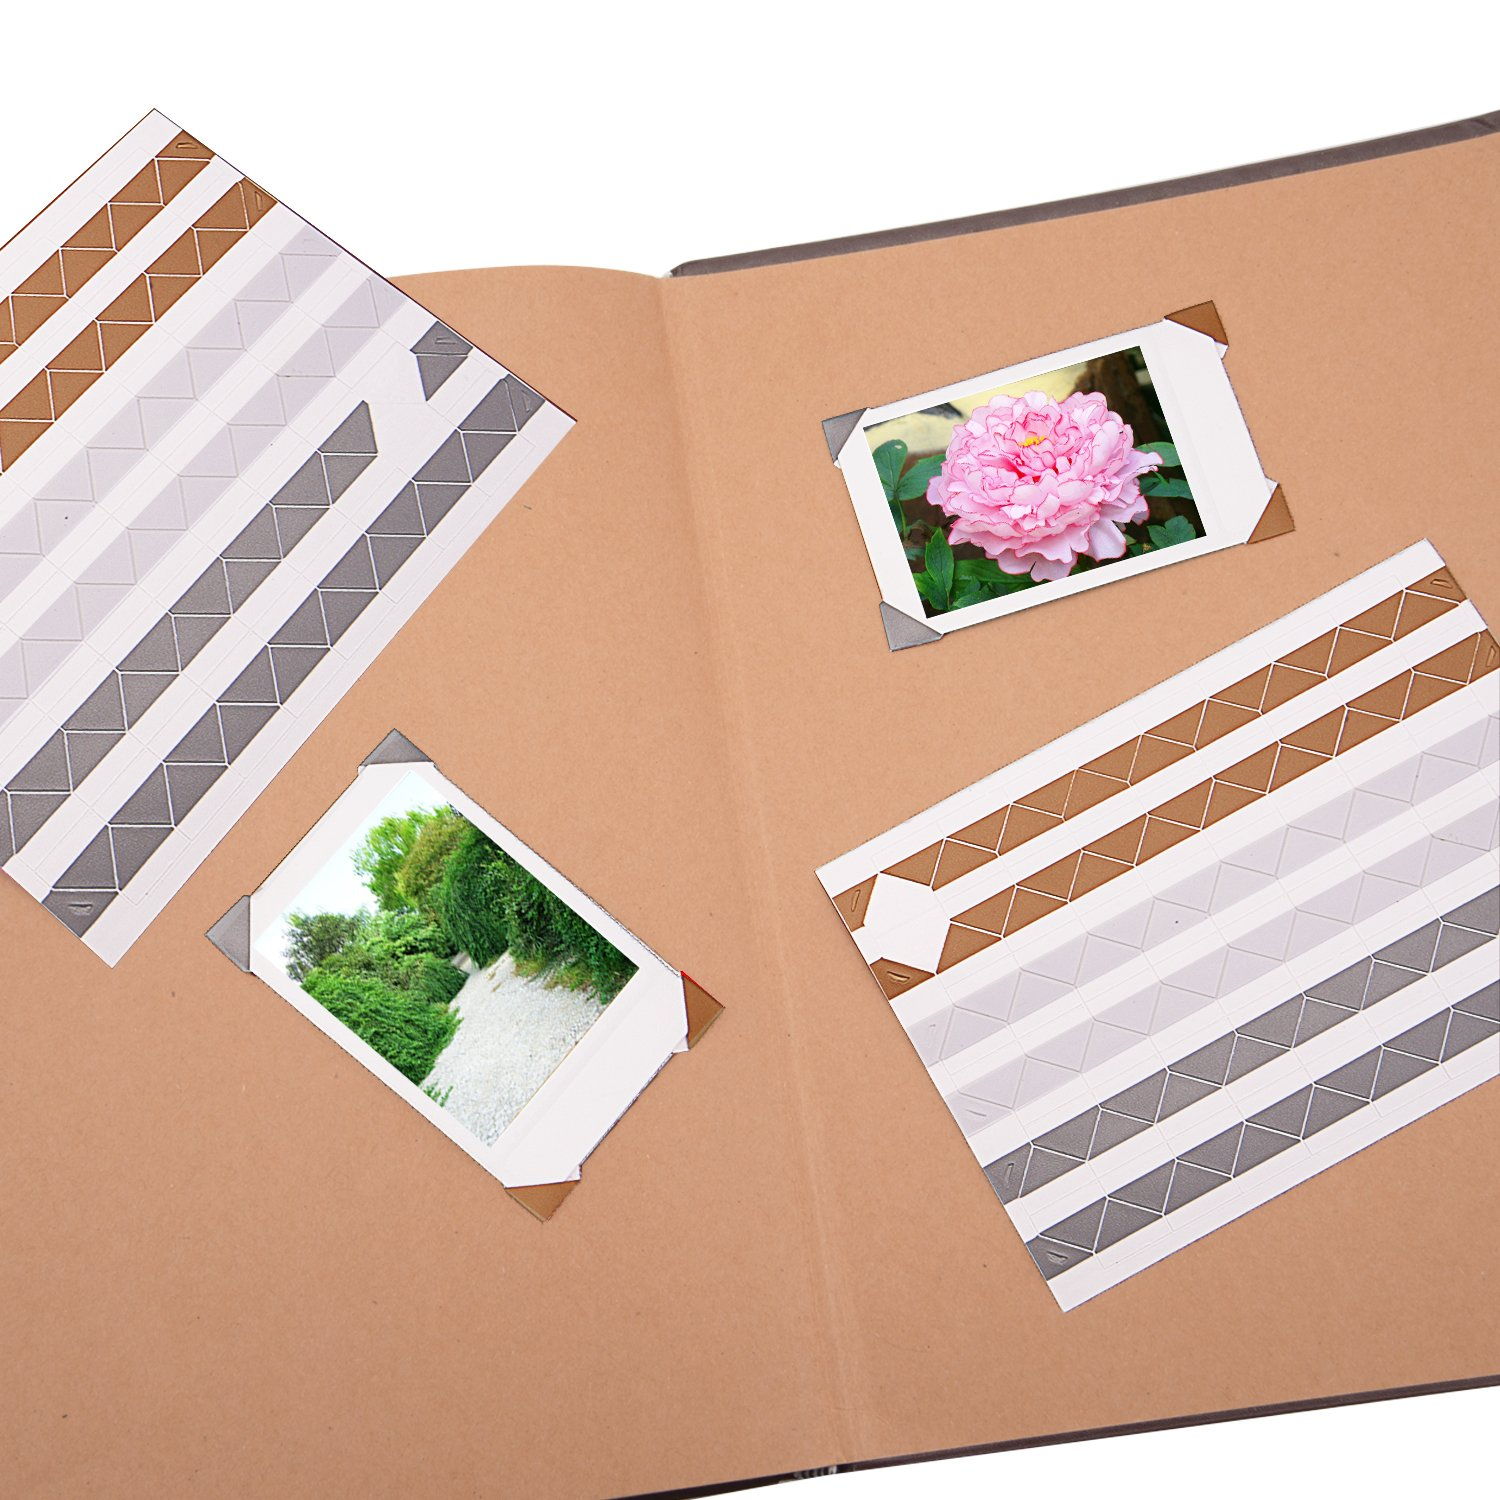 Sunmns 20 Sheets Photo Picture Corners Self Adhesive Stickers